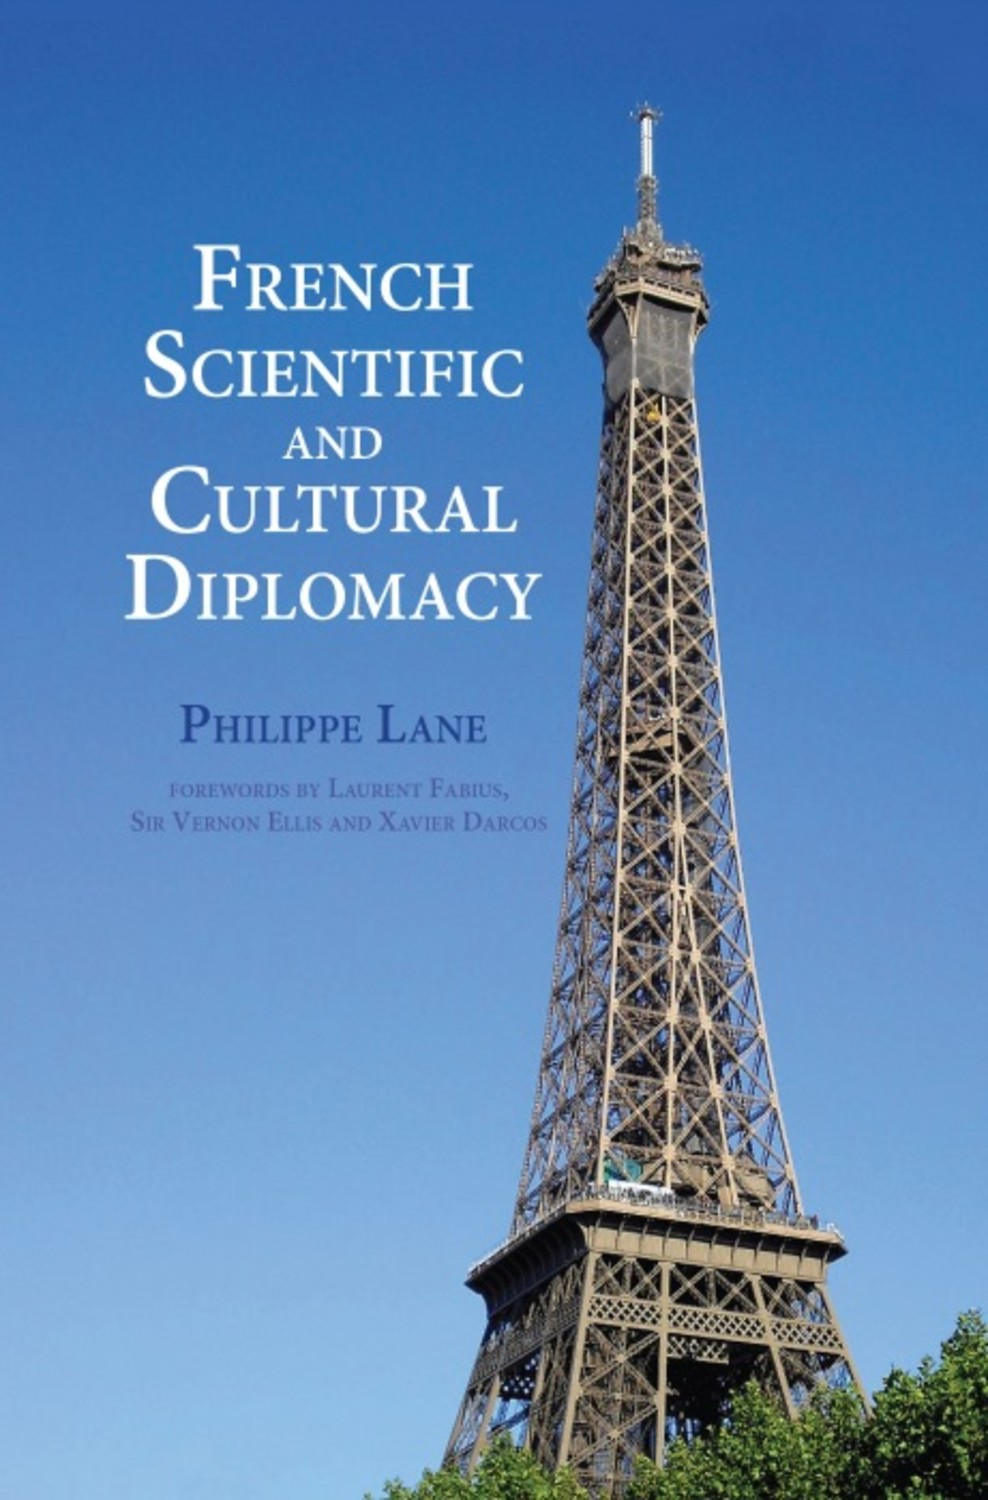 French Scientific and Cultural Diplomacy